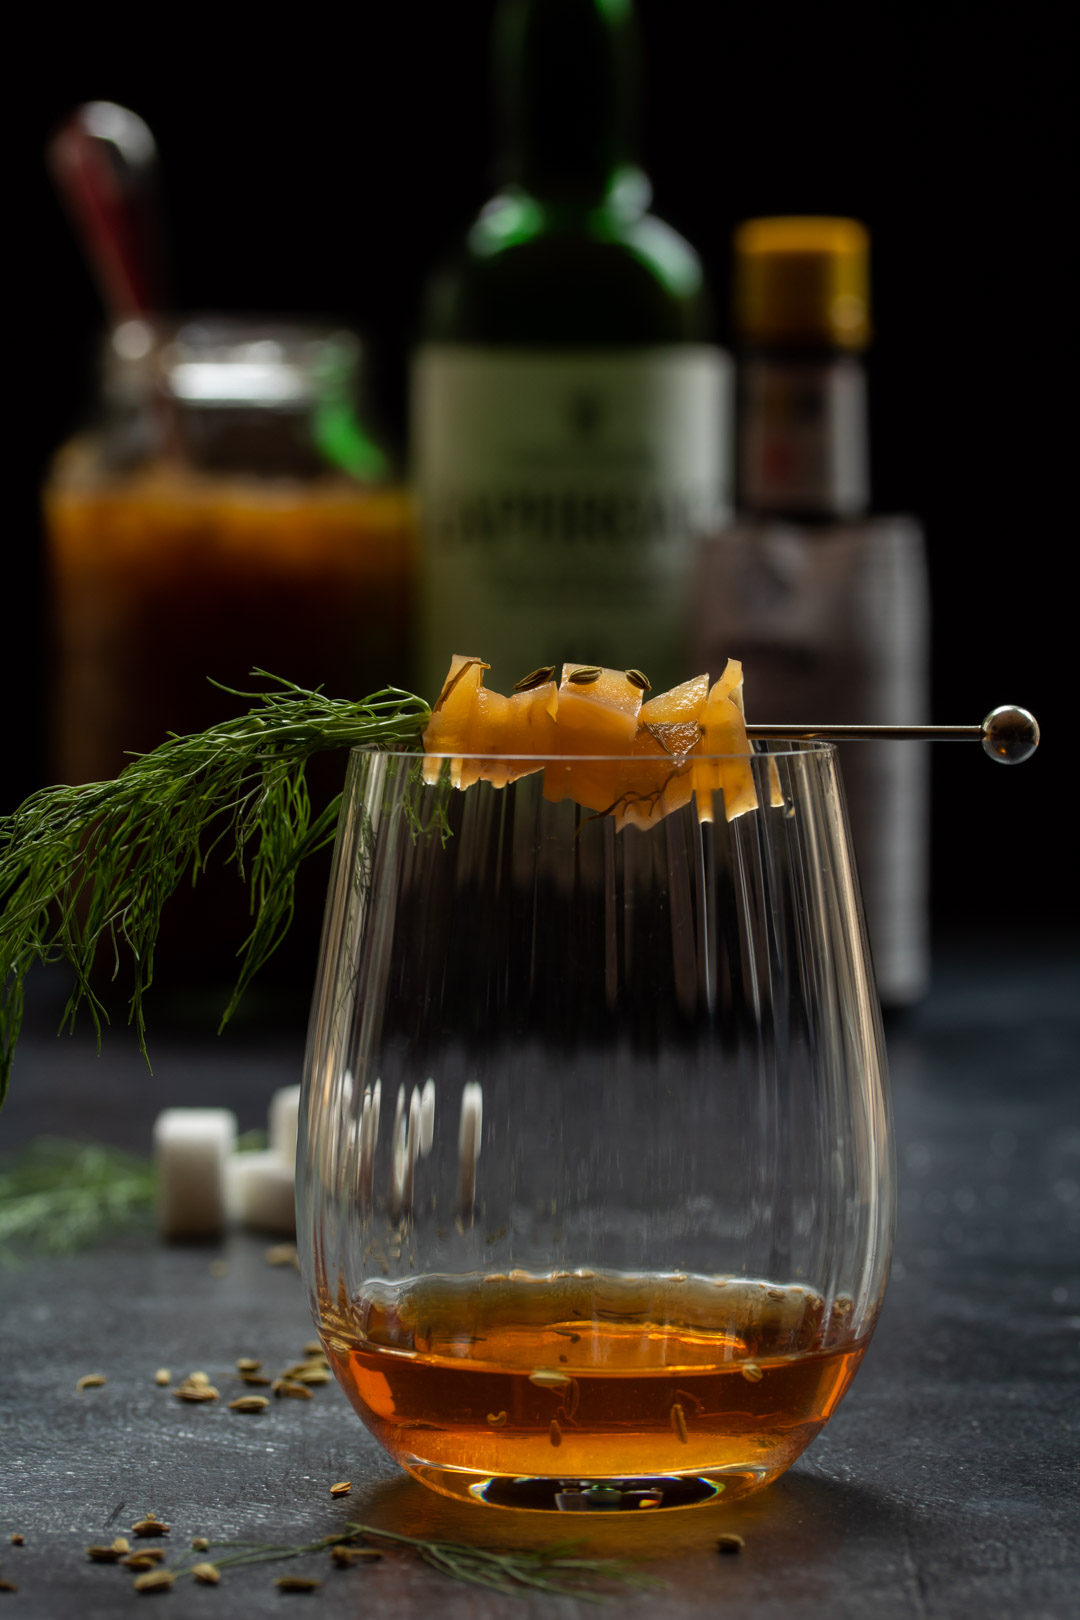 fennel pickle old fashioned cocktail: eye level making vertical